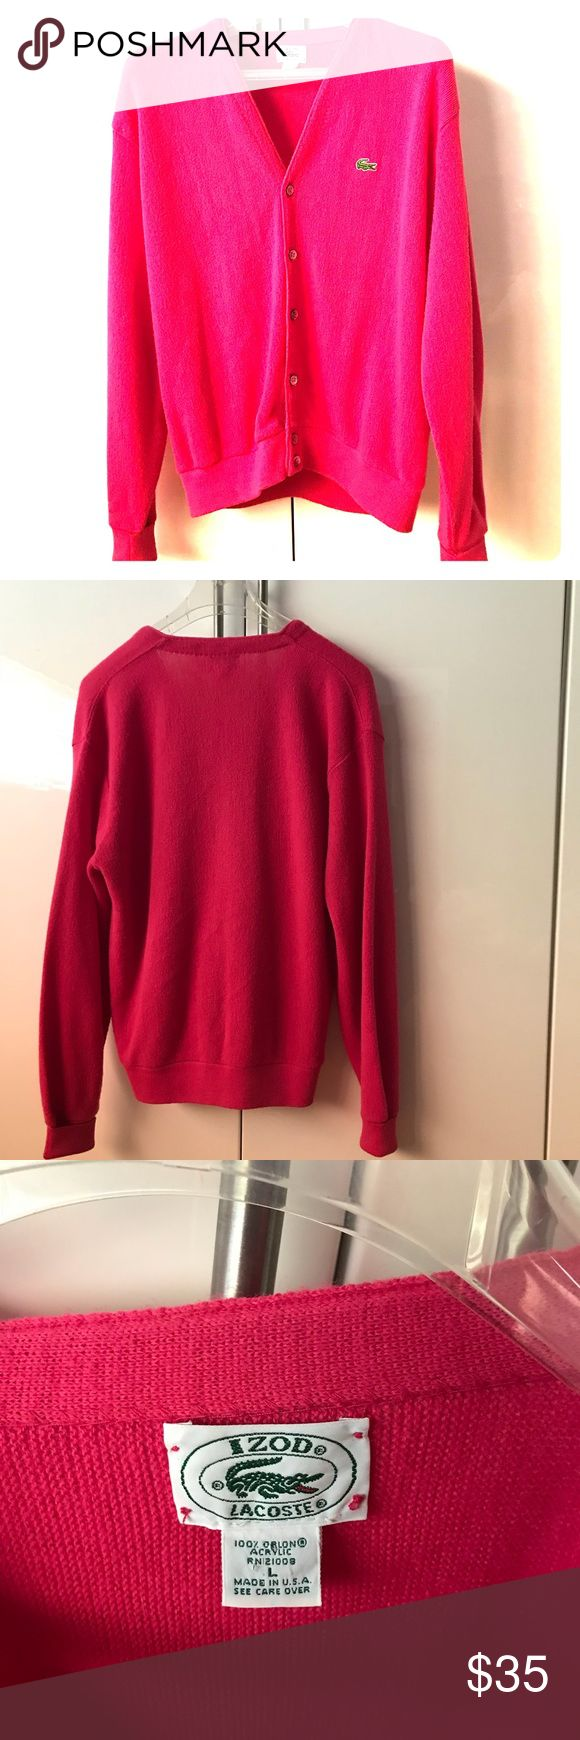 Lacoste got pink cardigan Hot pink to brighten up your winter wardrobe. Reposh. Too big for me. Condition in excellent.  No tears, rips, pulls or stains. Just washed and cleaned and ready to ship. Lacoste Sweaters Cardigans